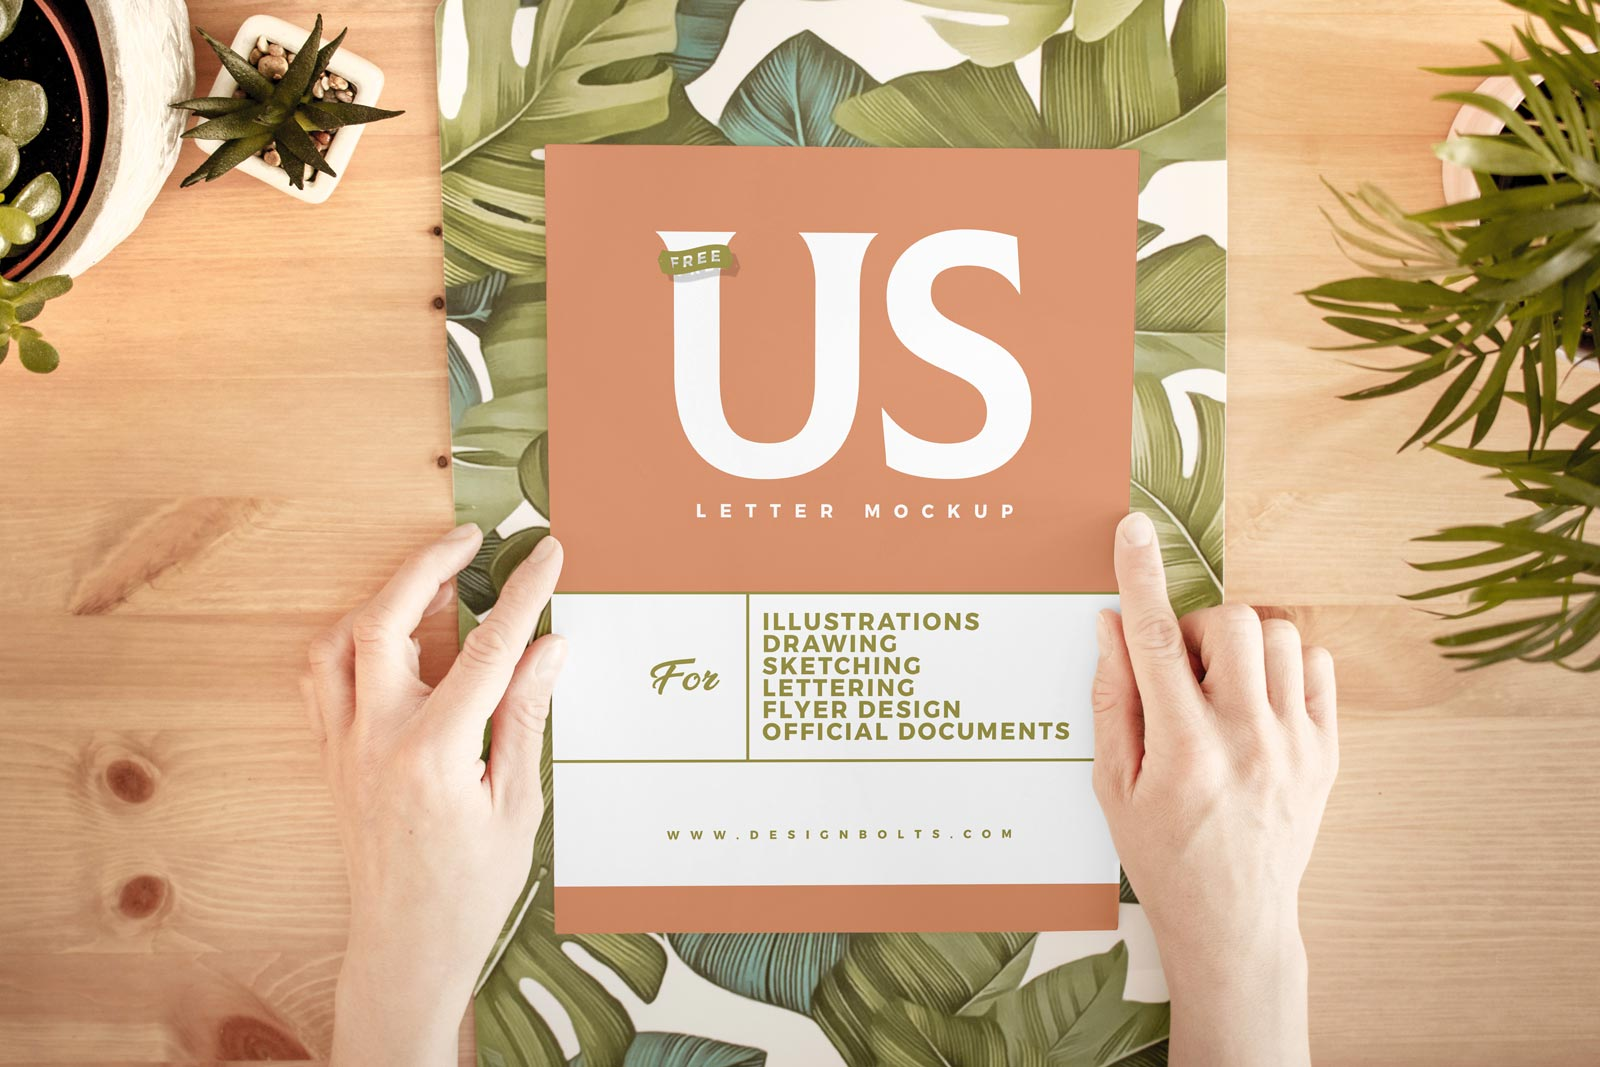 Free-Hand-Holding-A4-Size-Paper-Mockup-PSD